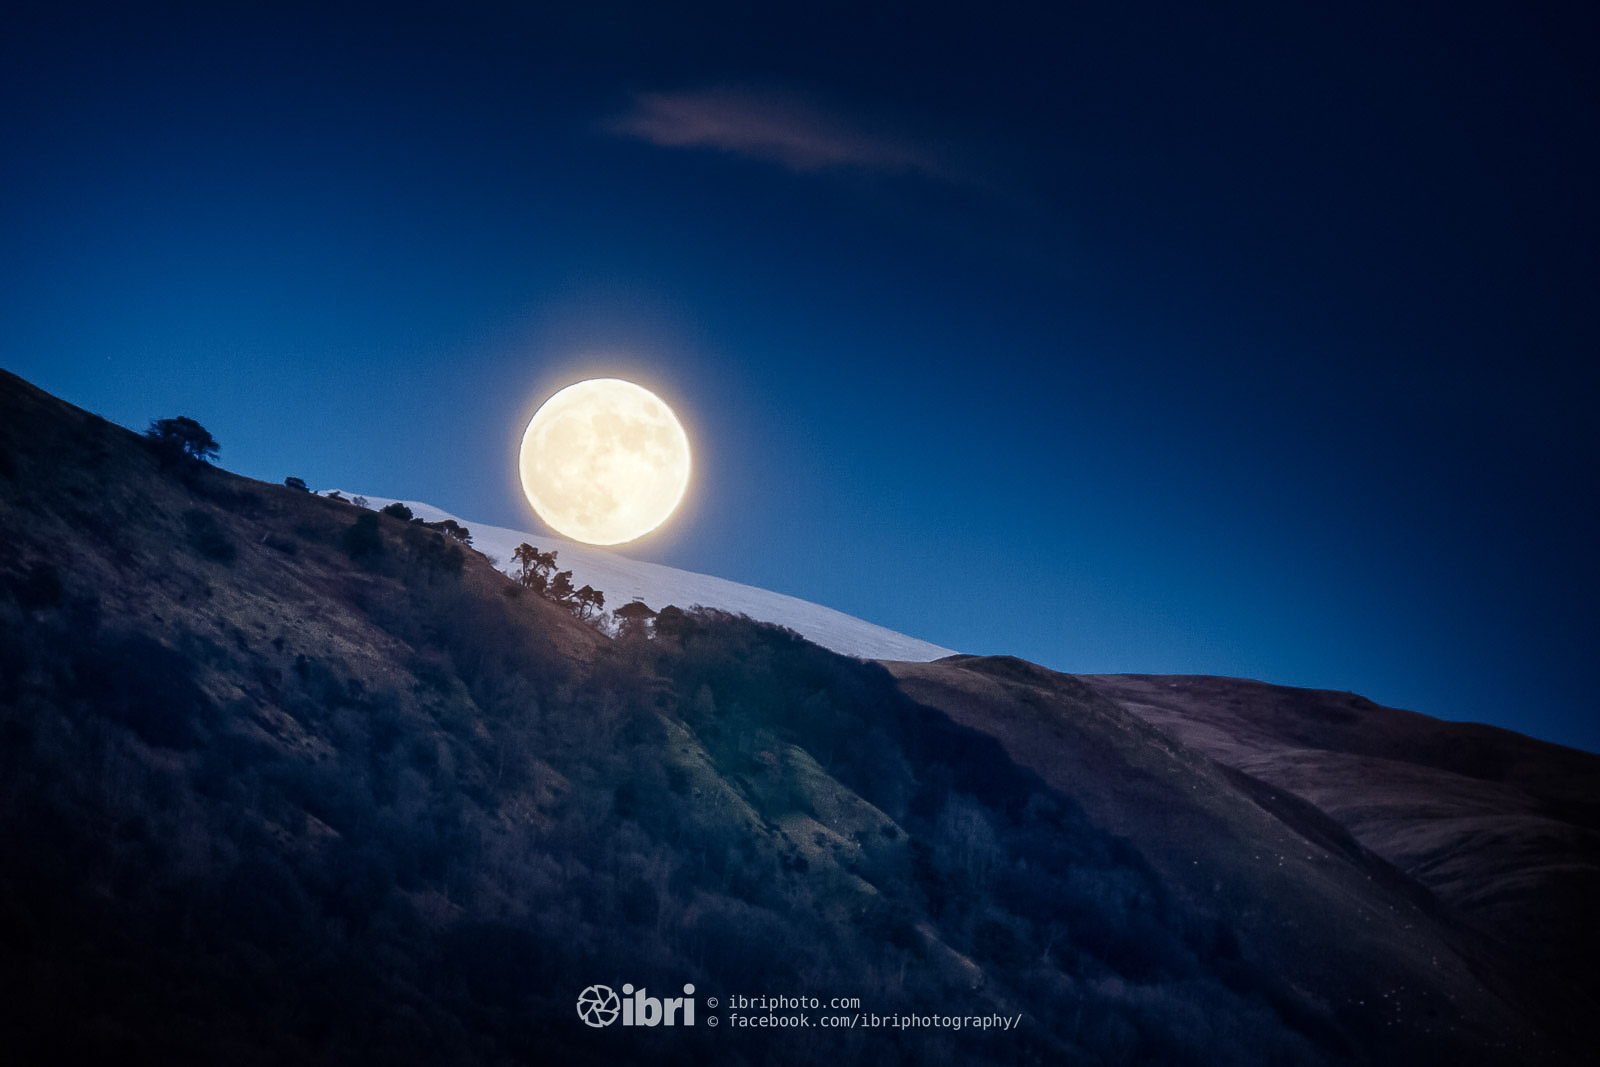 First on the first. Moonrise over a snow covered King's Seat in the Ochil Hills. A full 'Wolf' Supermoon in a few hours, it looked like it was enjoying some sledging on the first day of 2018.